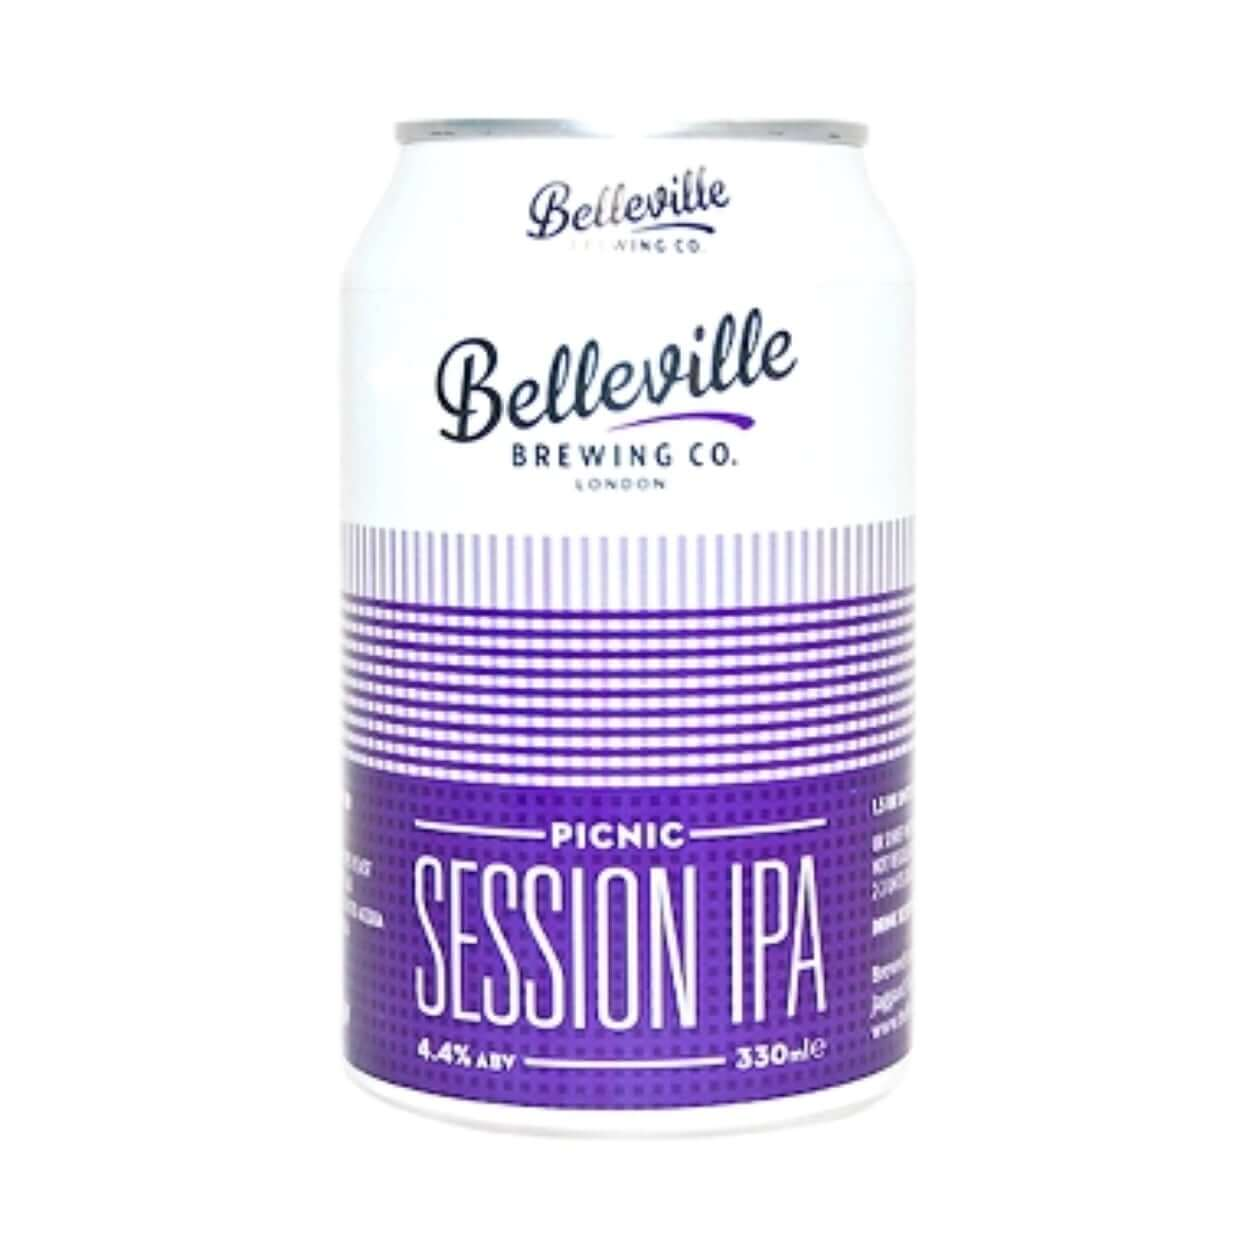 Belleville Picnic Session IPA 330ml